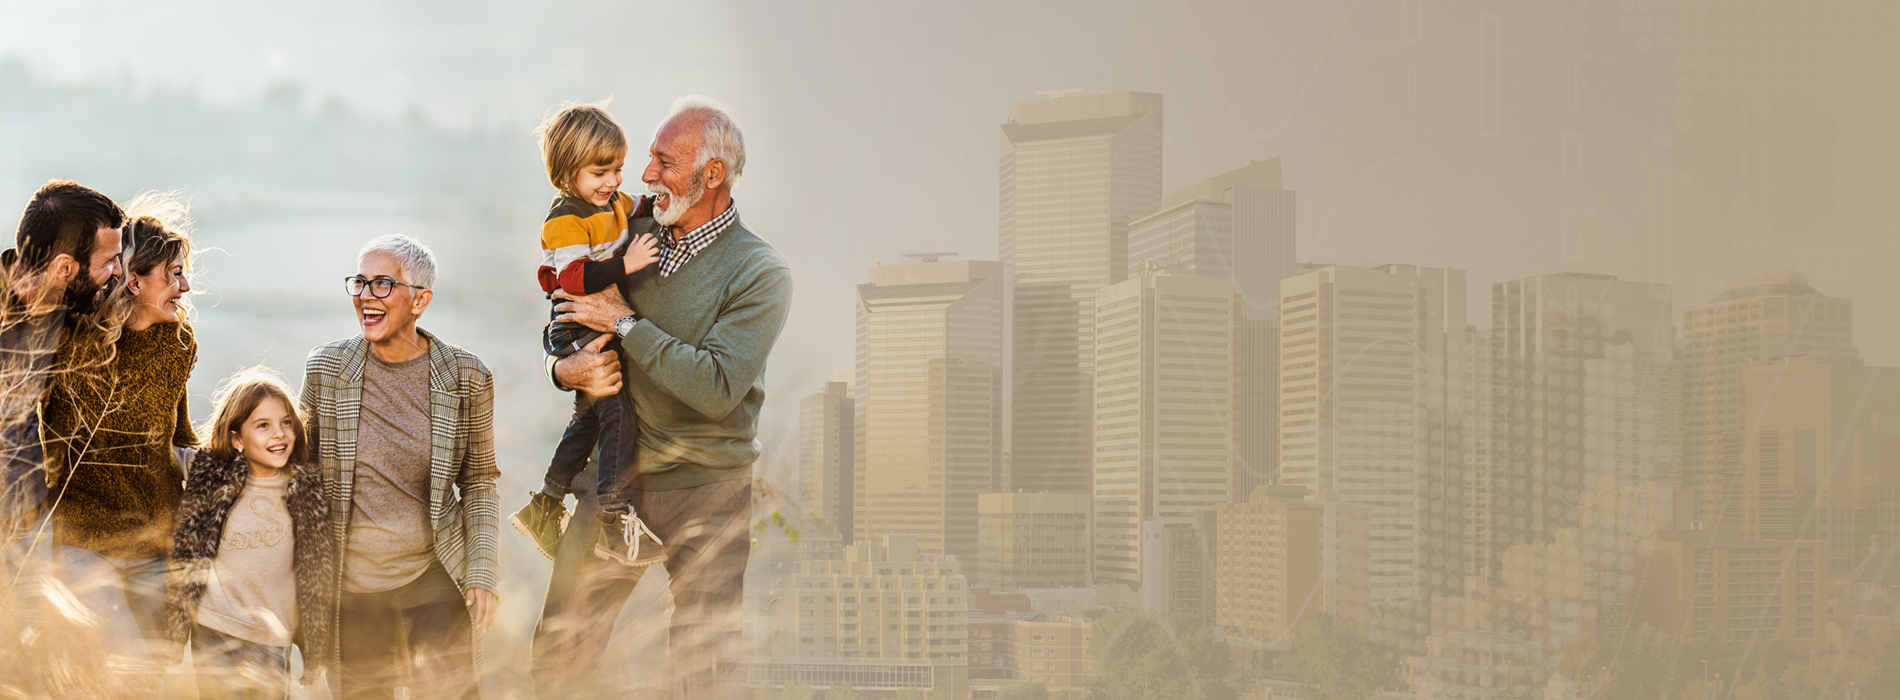 A senior couple enjoys playing with their grandson with the background of Calgary's Peace Bridge and skyline. A soft global image lays over top to create a sense of global connectedness